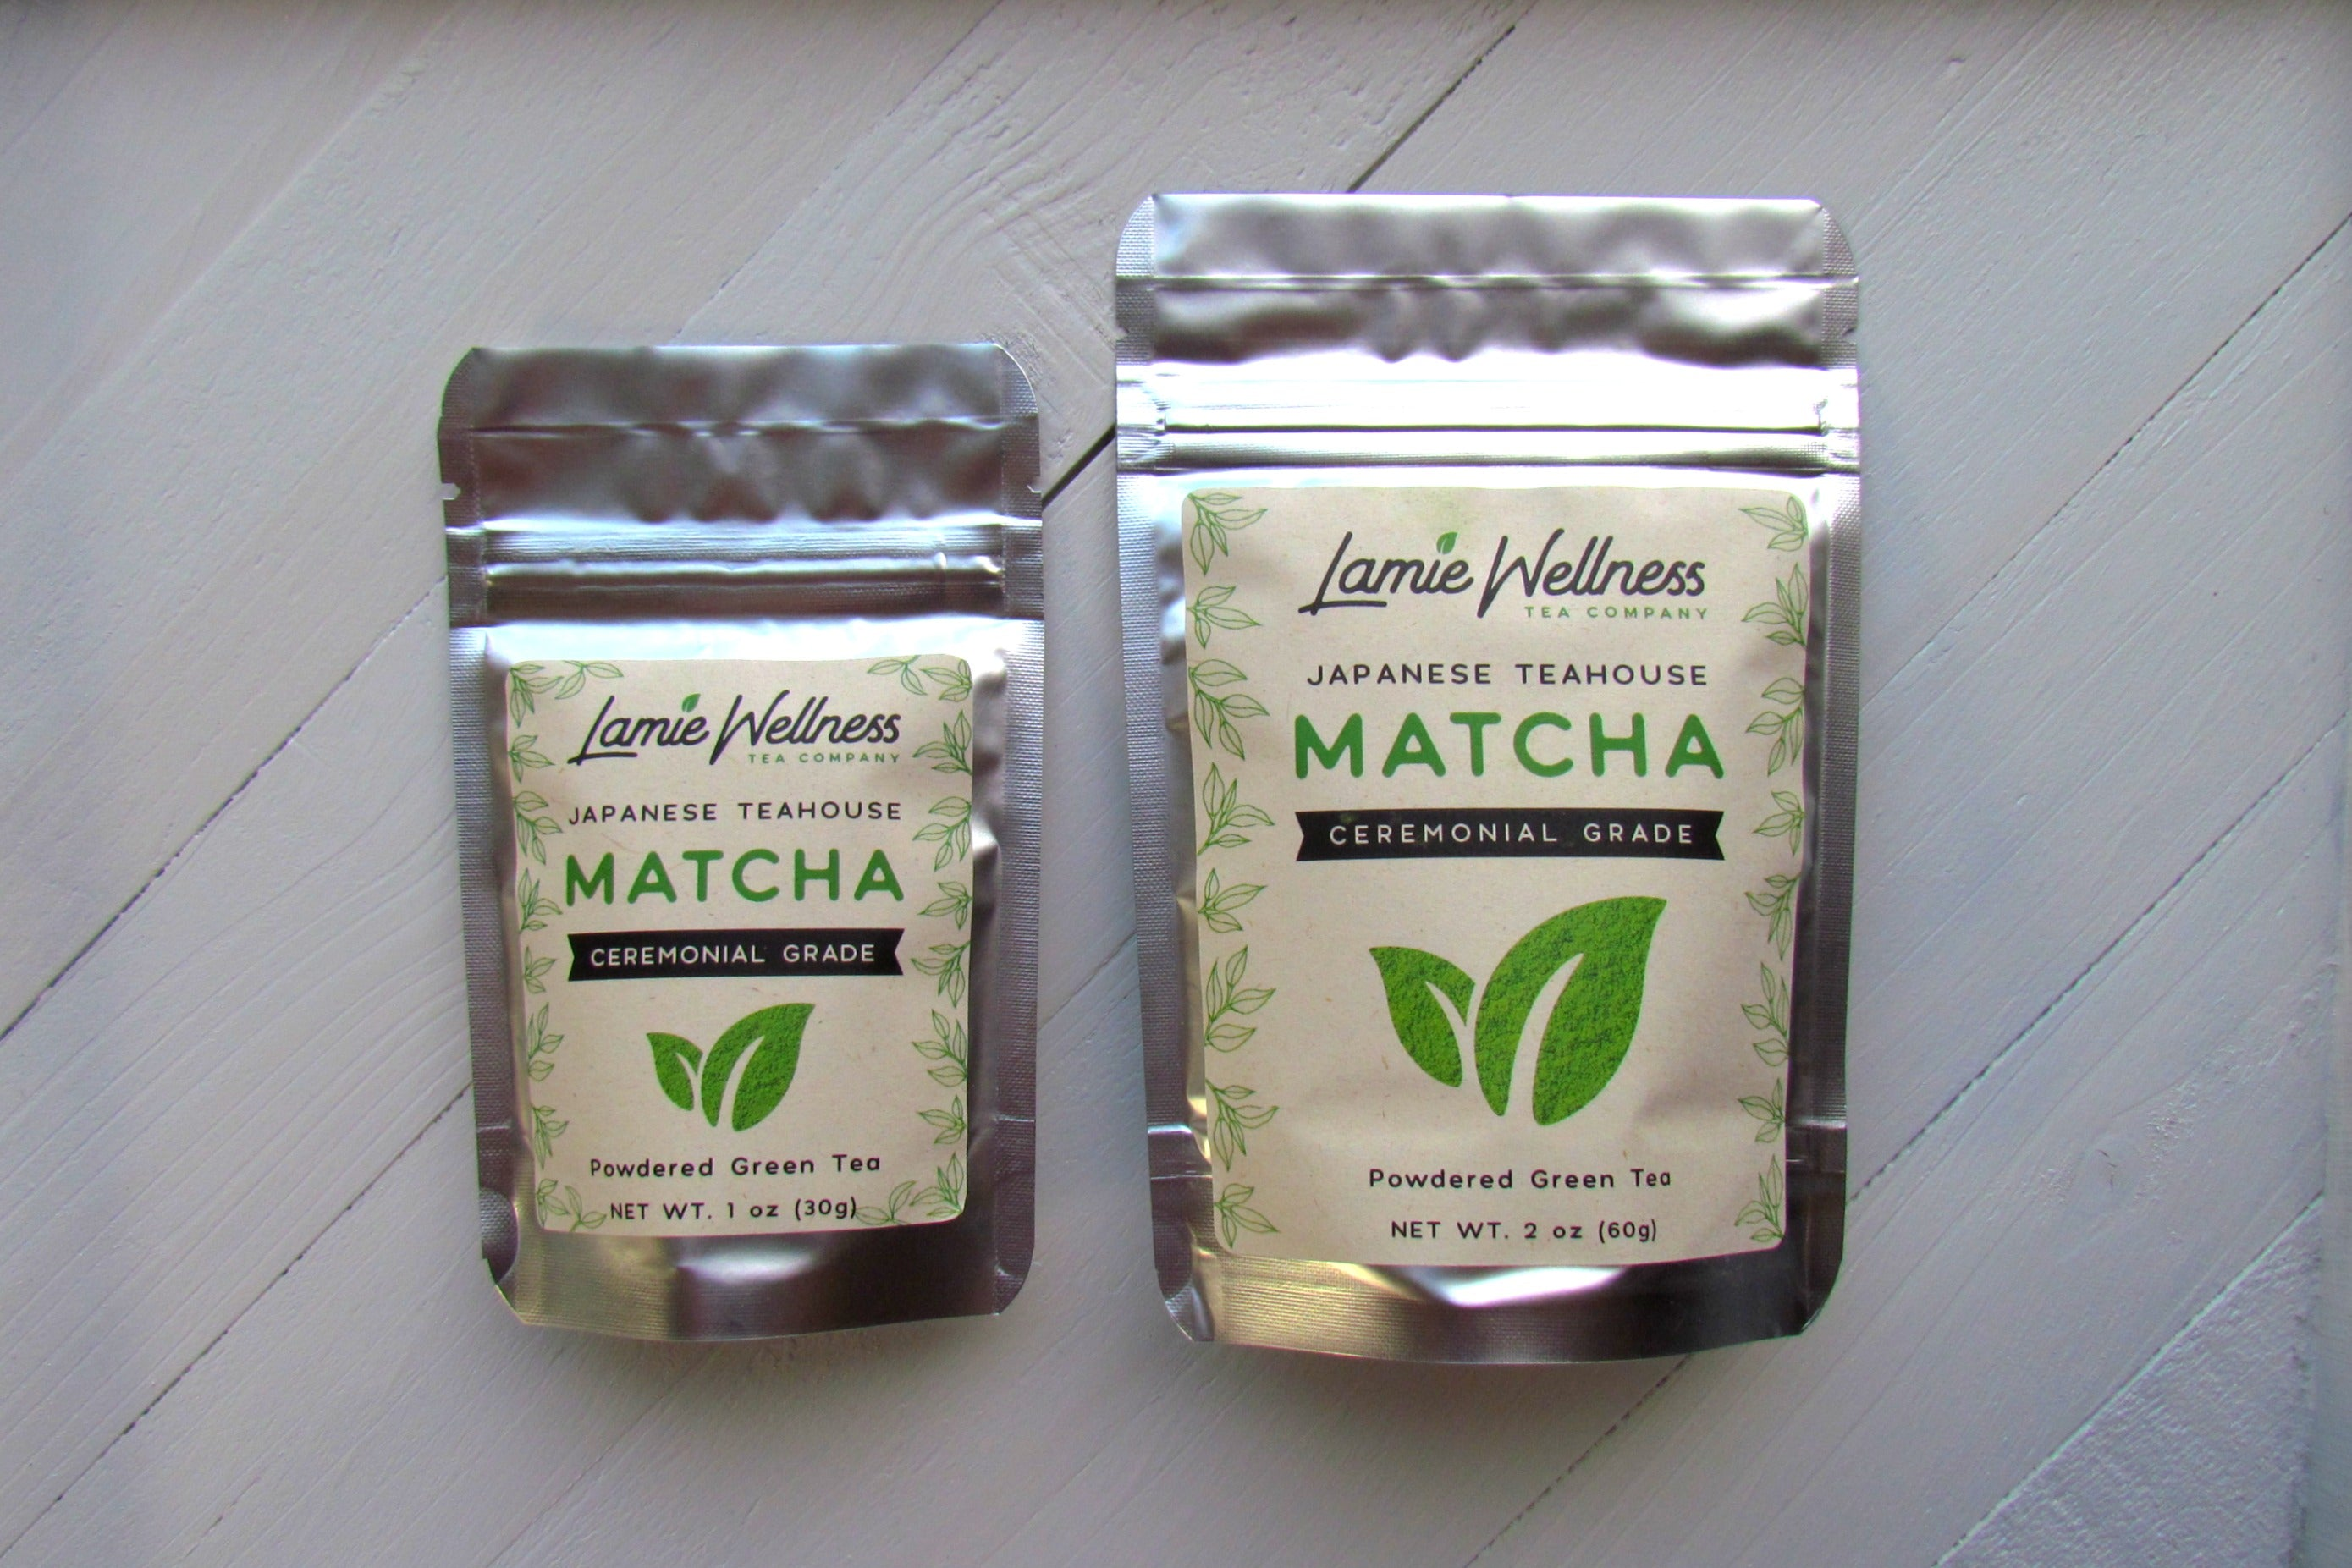 Japanese Teahouse Matcha by Lamie Wellness | Ceremonial Grade Matcha Tea